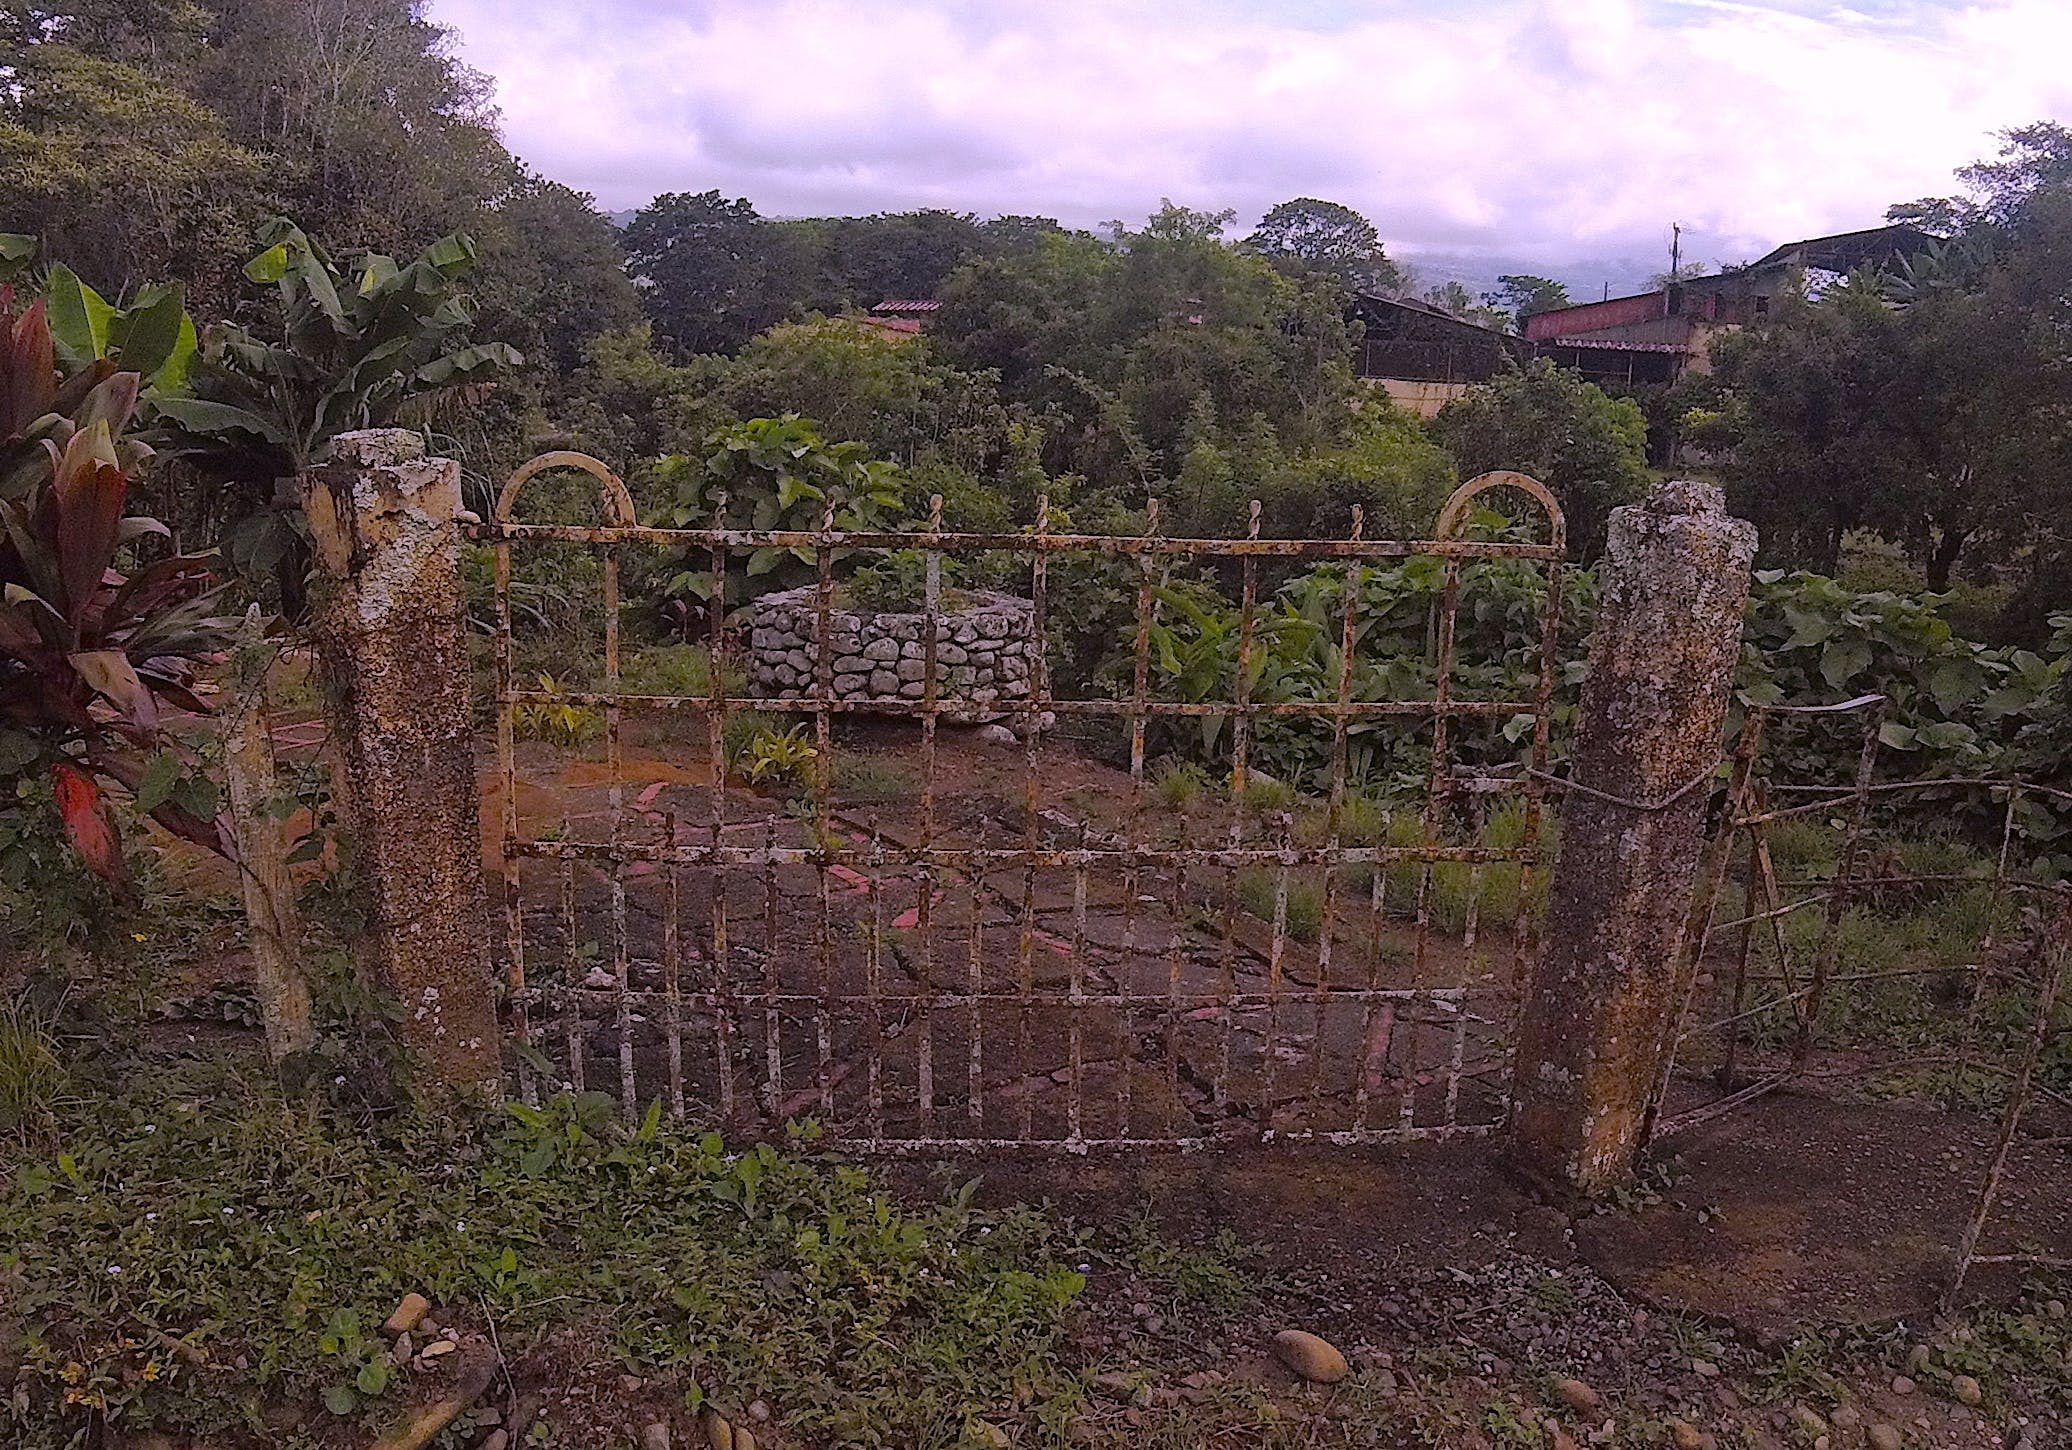 Free stock photo of nature, rust, plants, gate